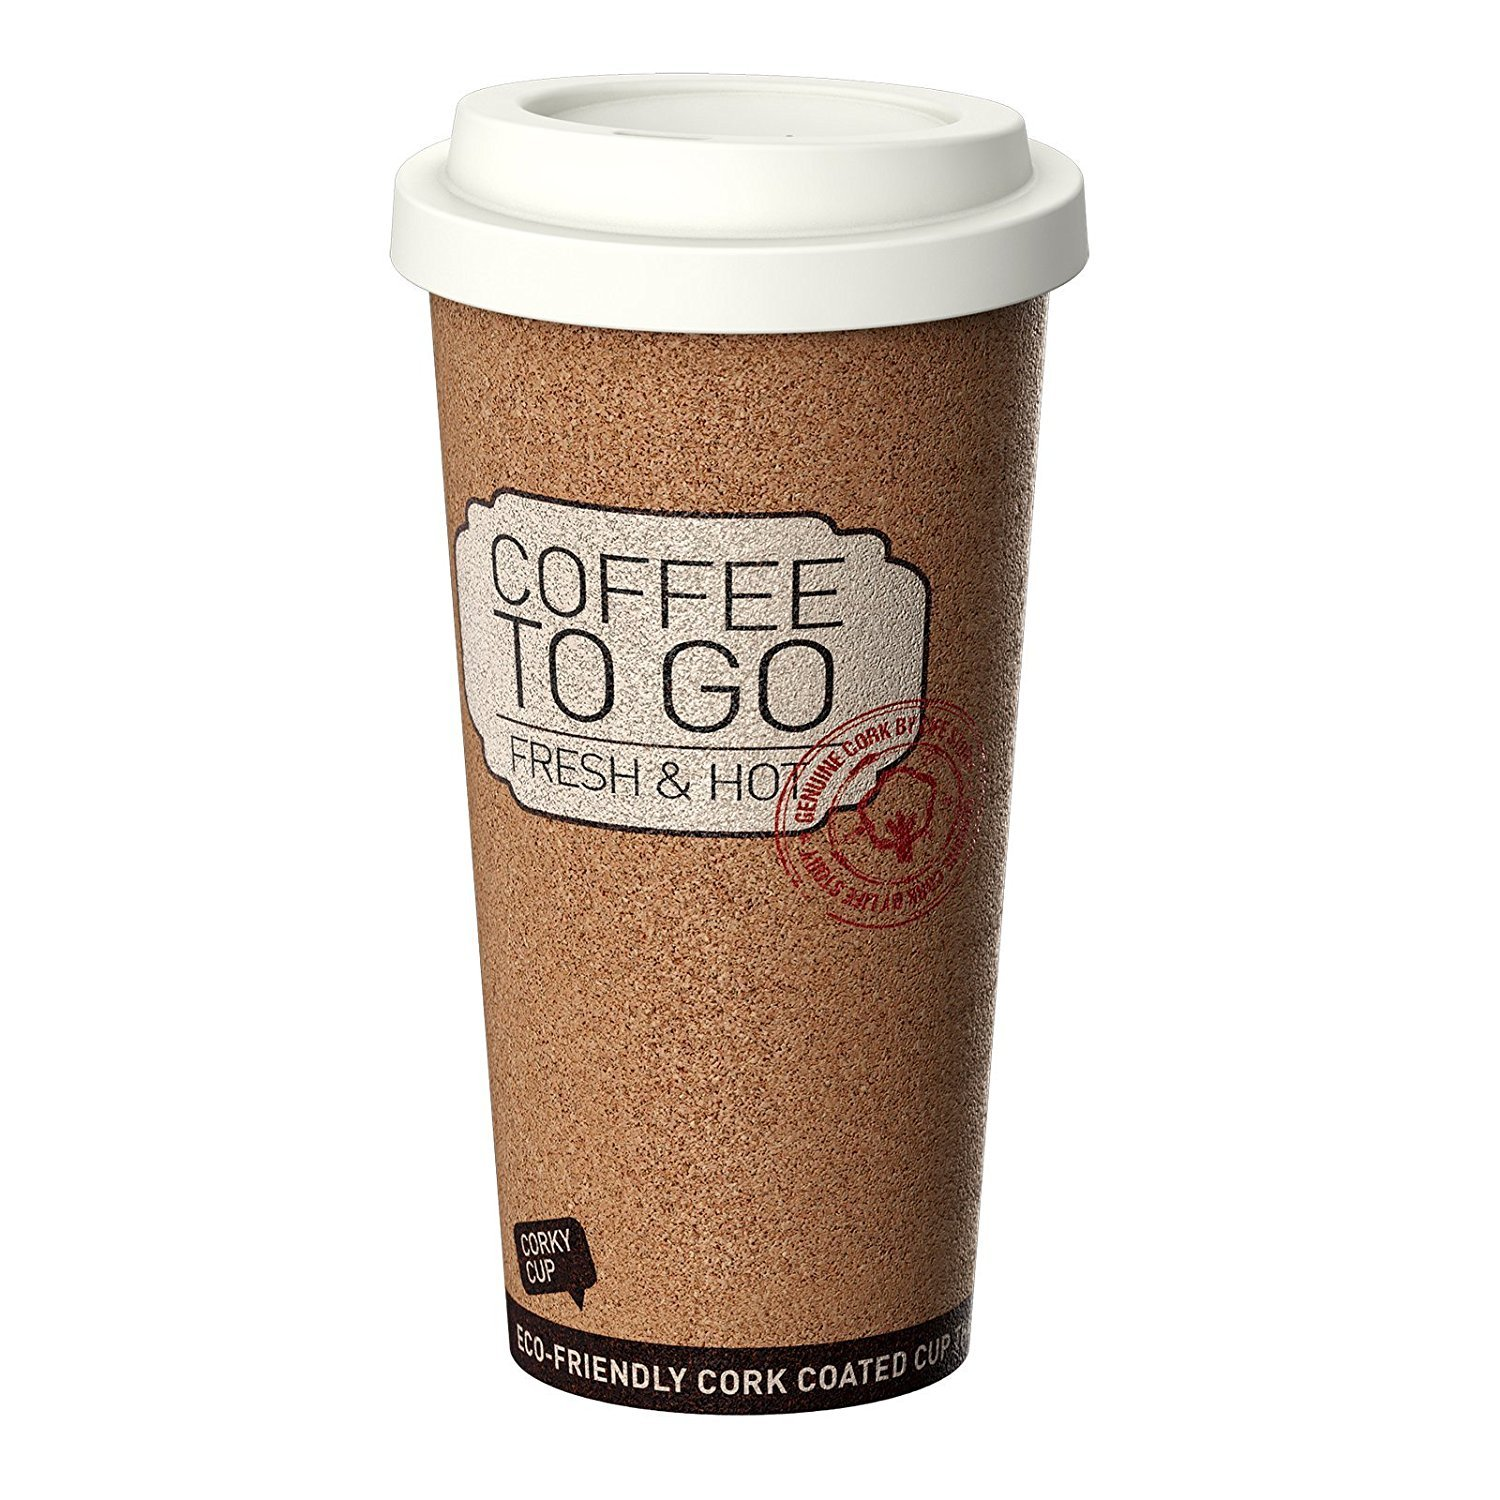 Coffee to go images galleries with a for Coffee to go